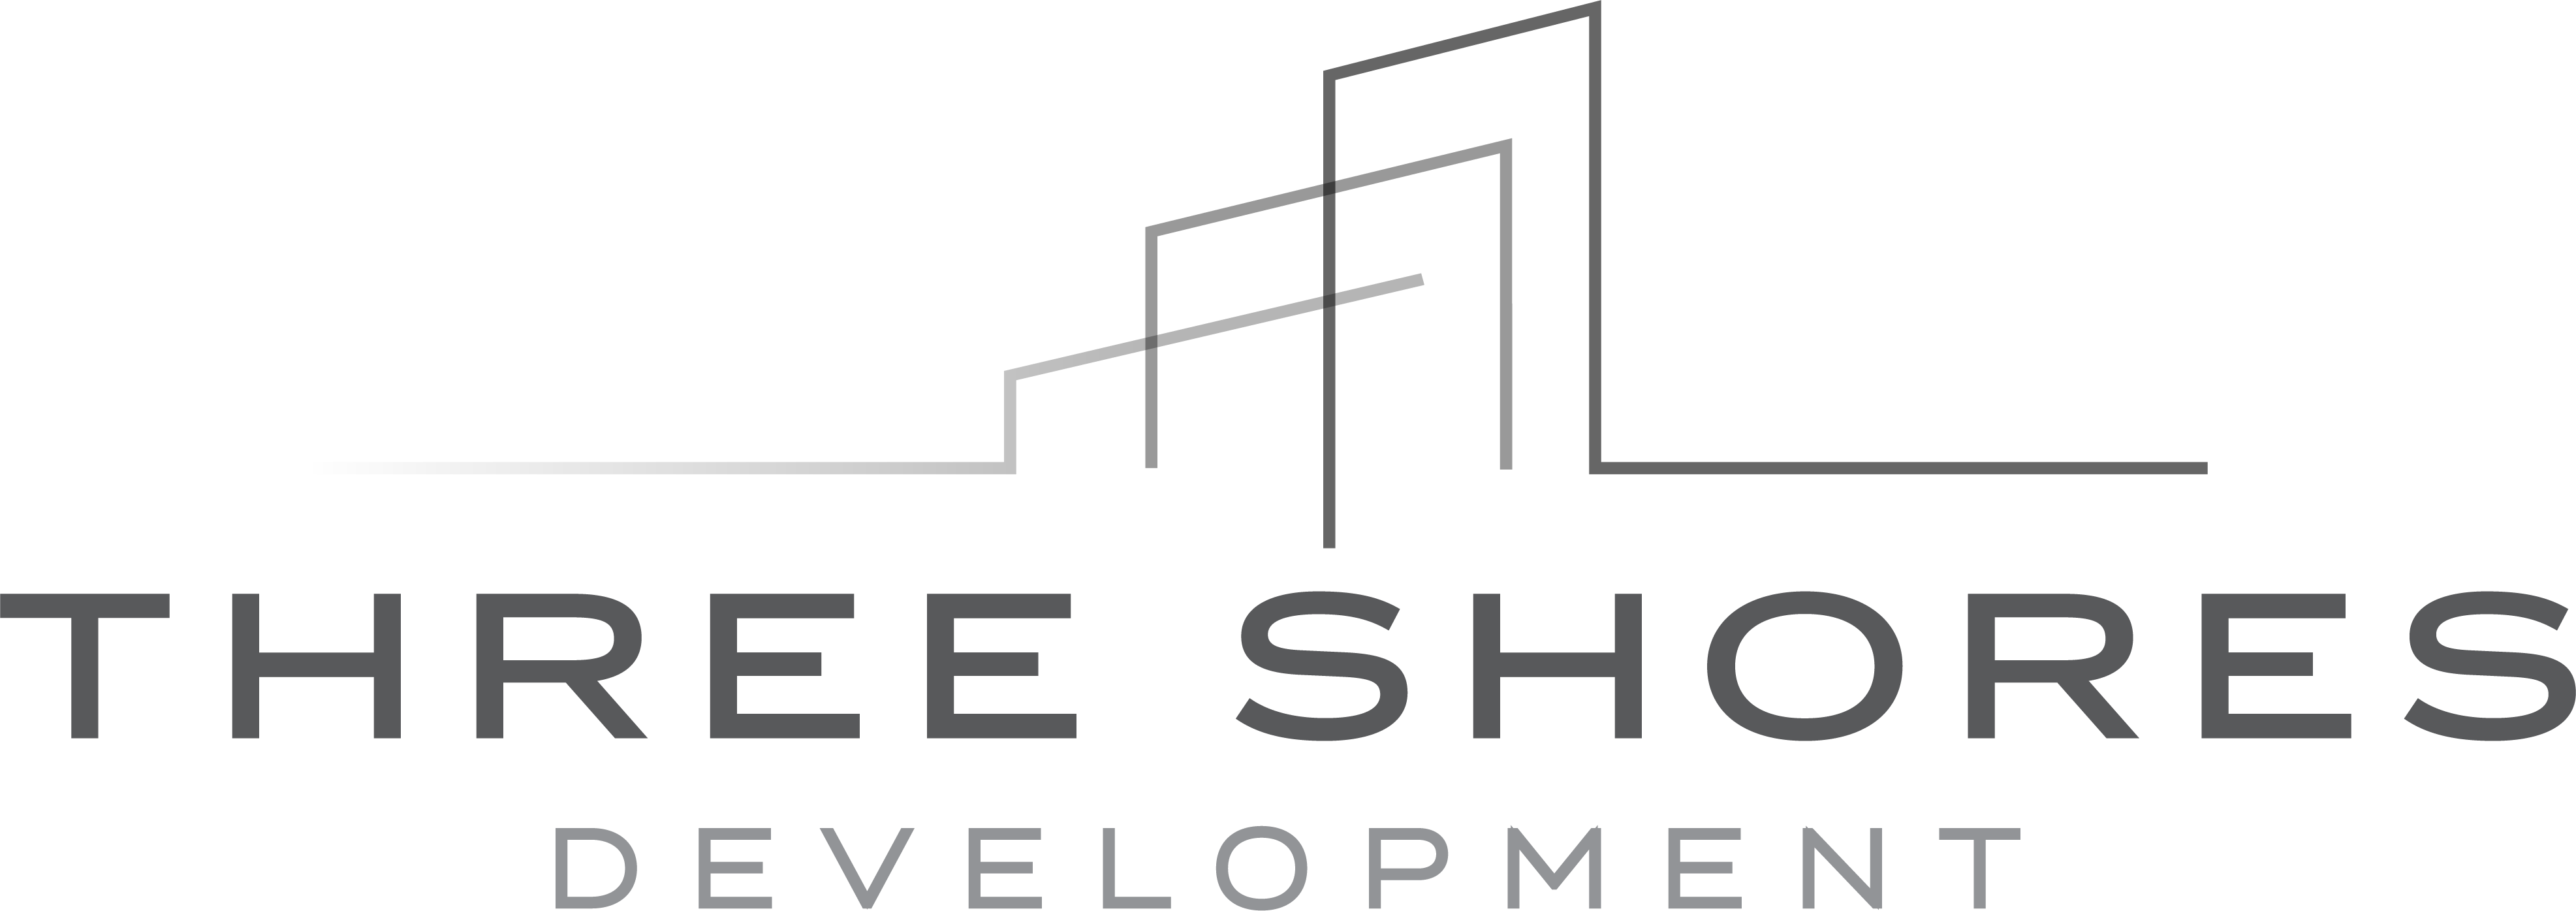 Three Shores Developmen